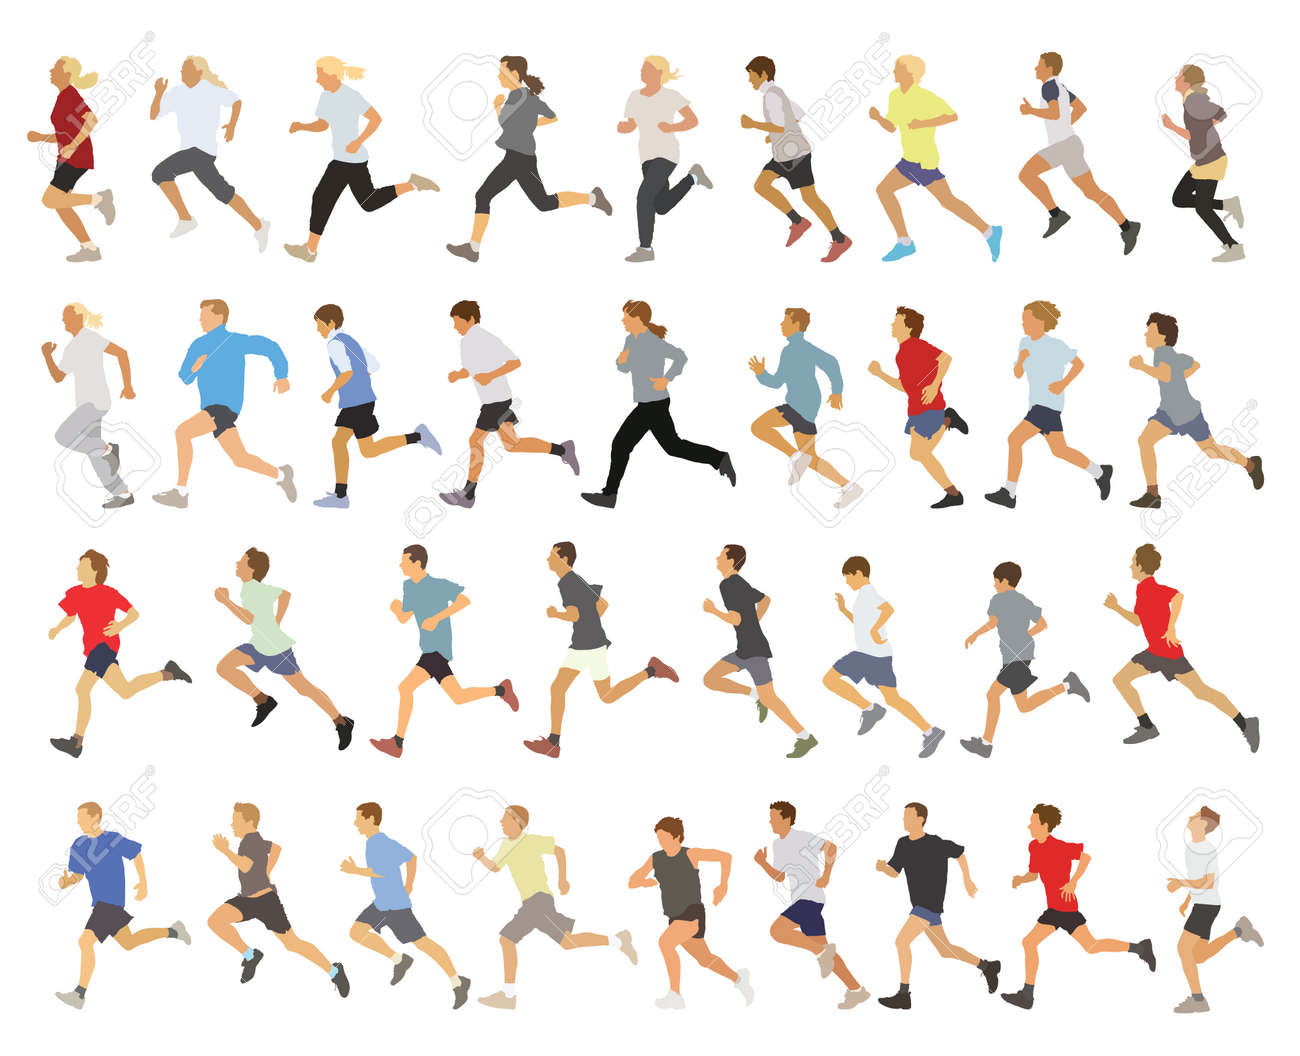 Large collection of running silhouettes, teenagers, boys and girls. Standard-Bild - 34150297